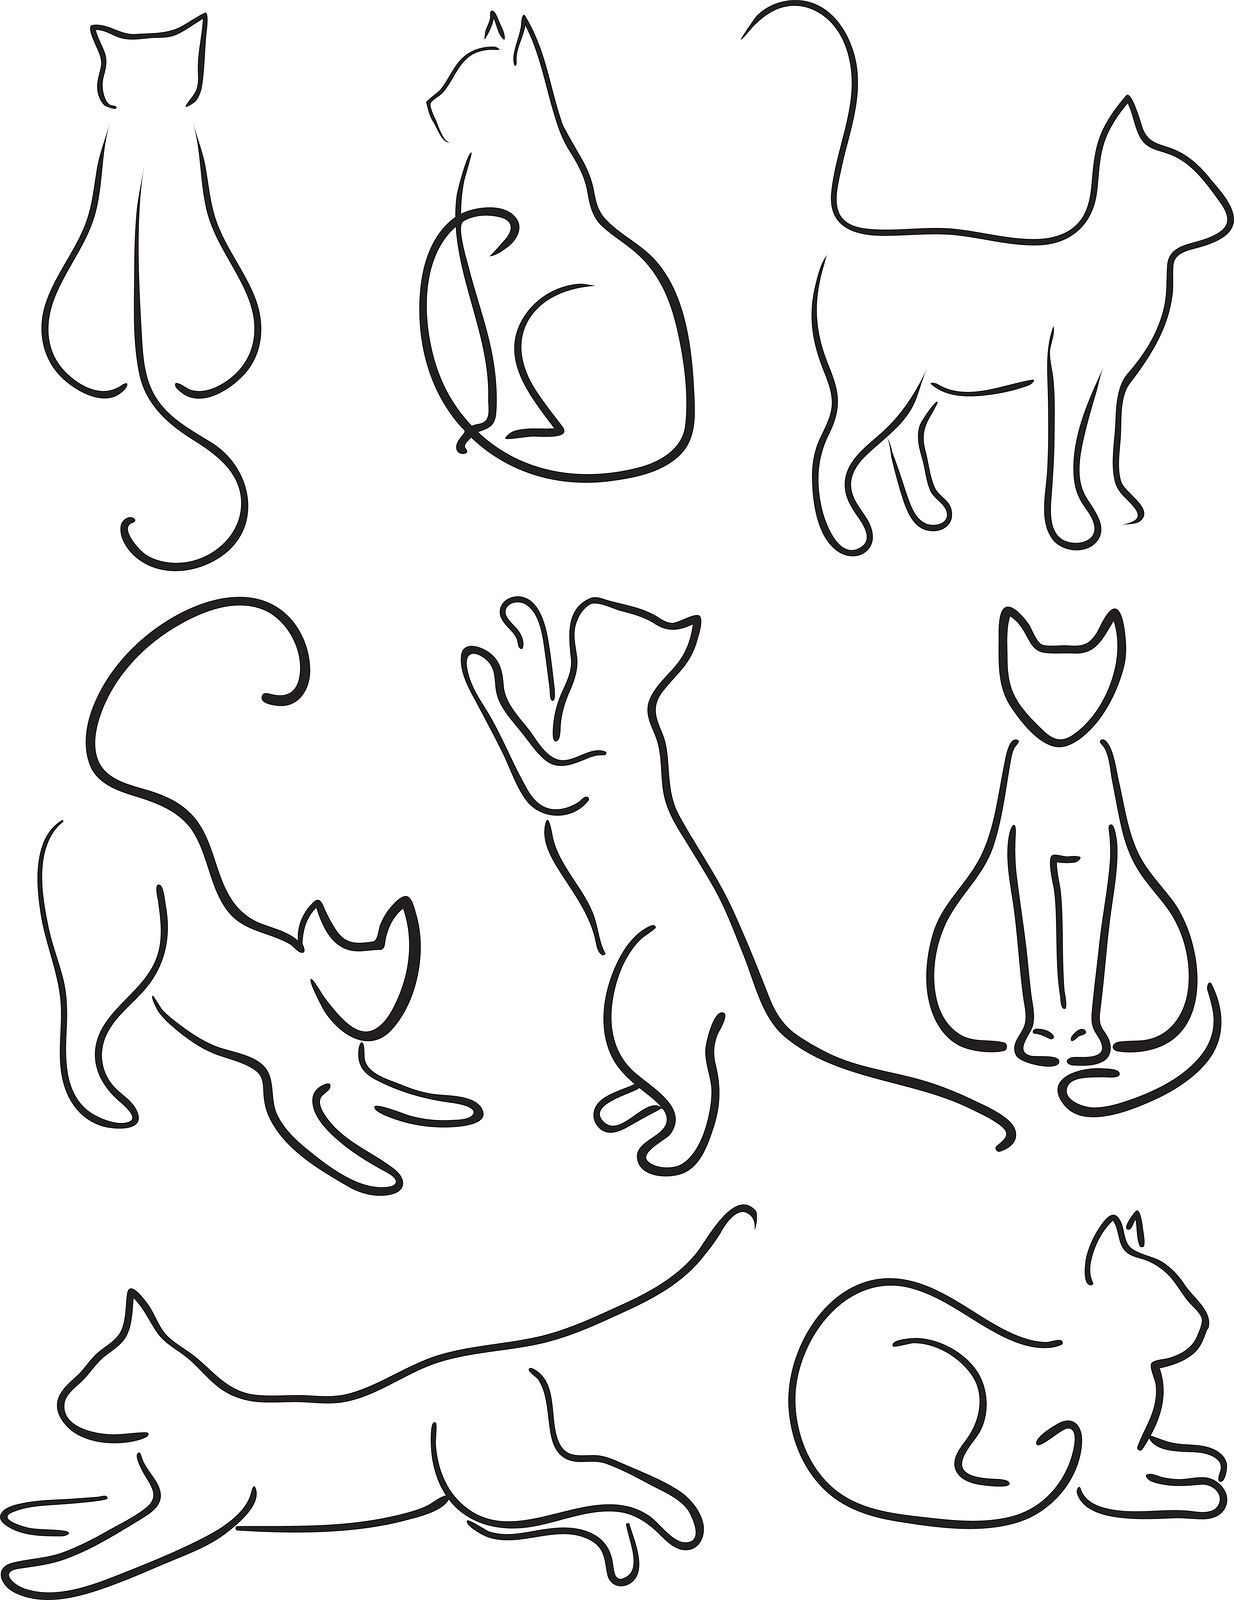 Uncategorized How To Draw A Small Cat httpwww levyinnovation comwp contentuploads201307bigstock silhouette of cats cat design set line art stock photo drawing